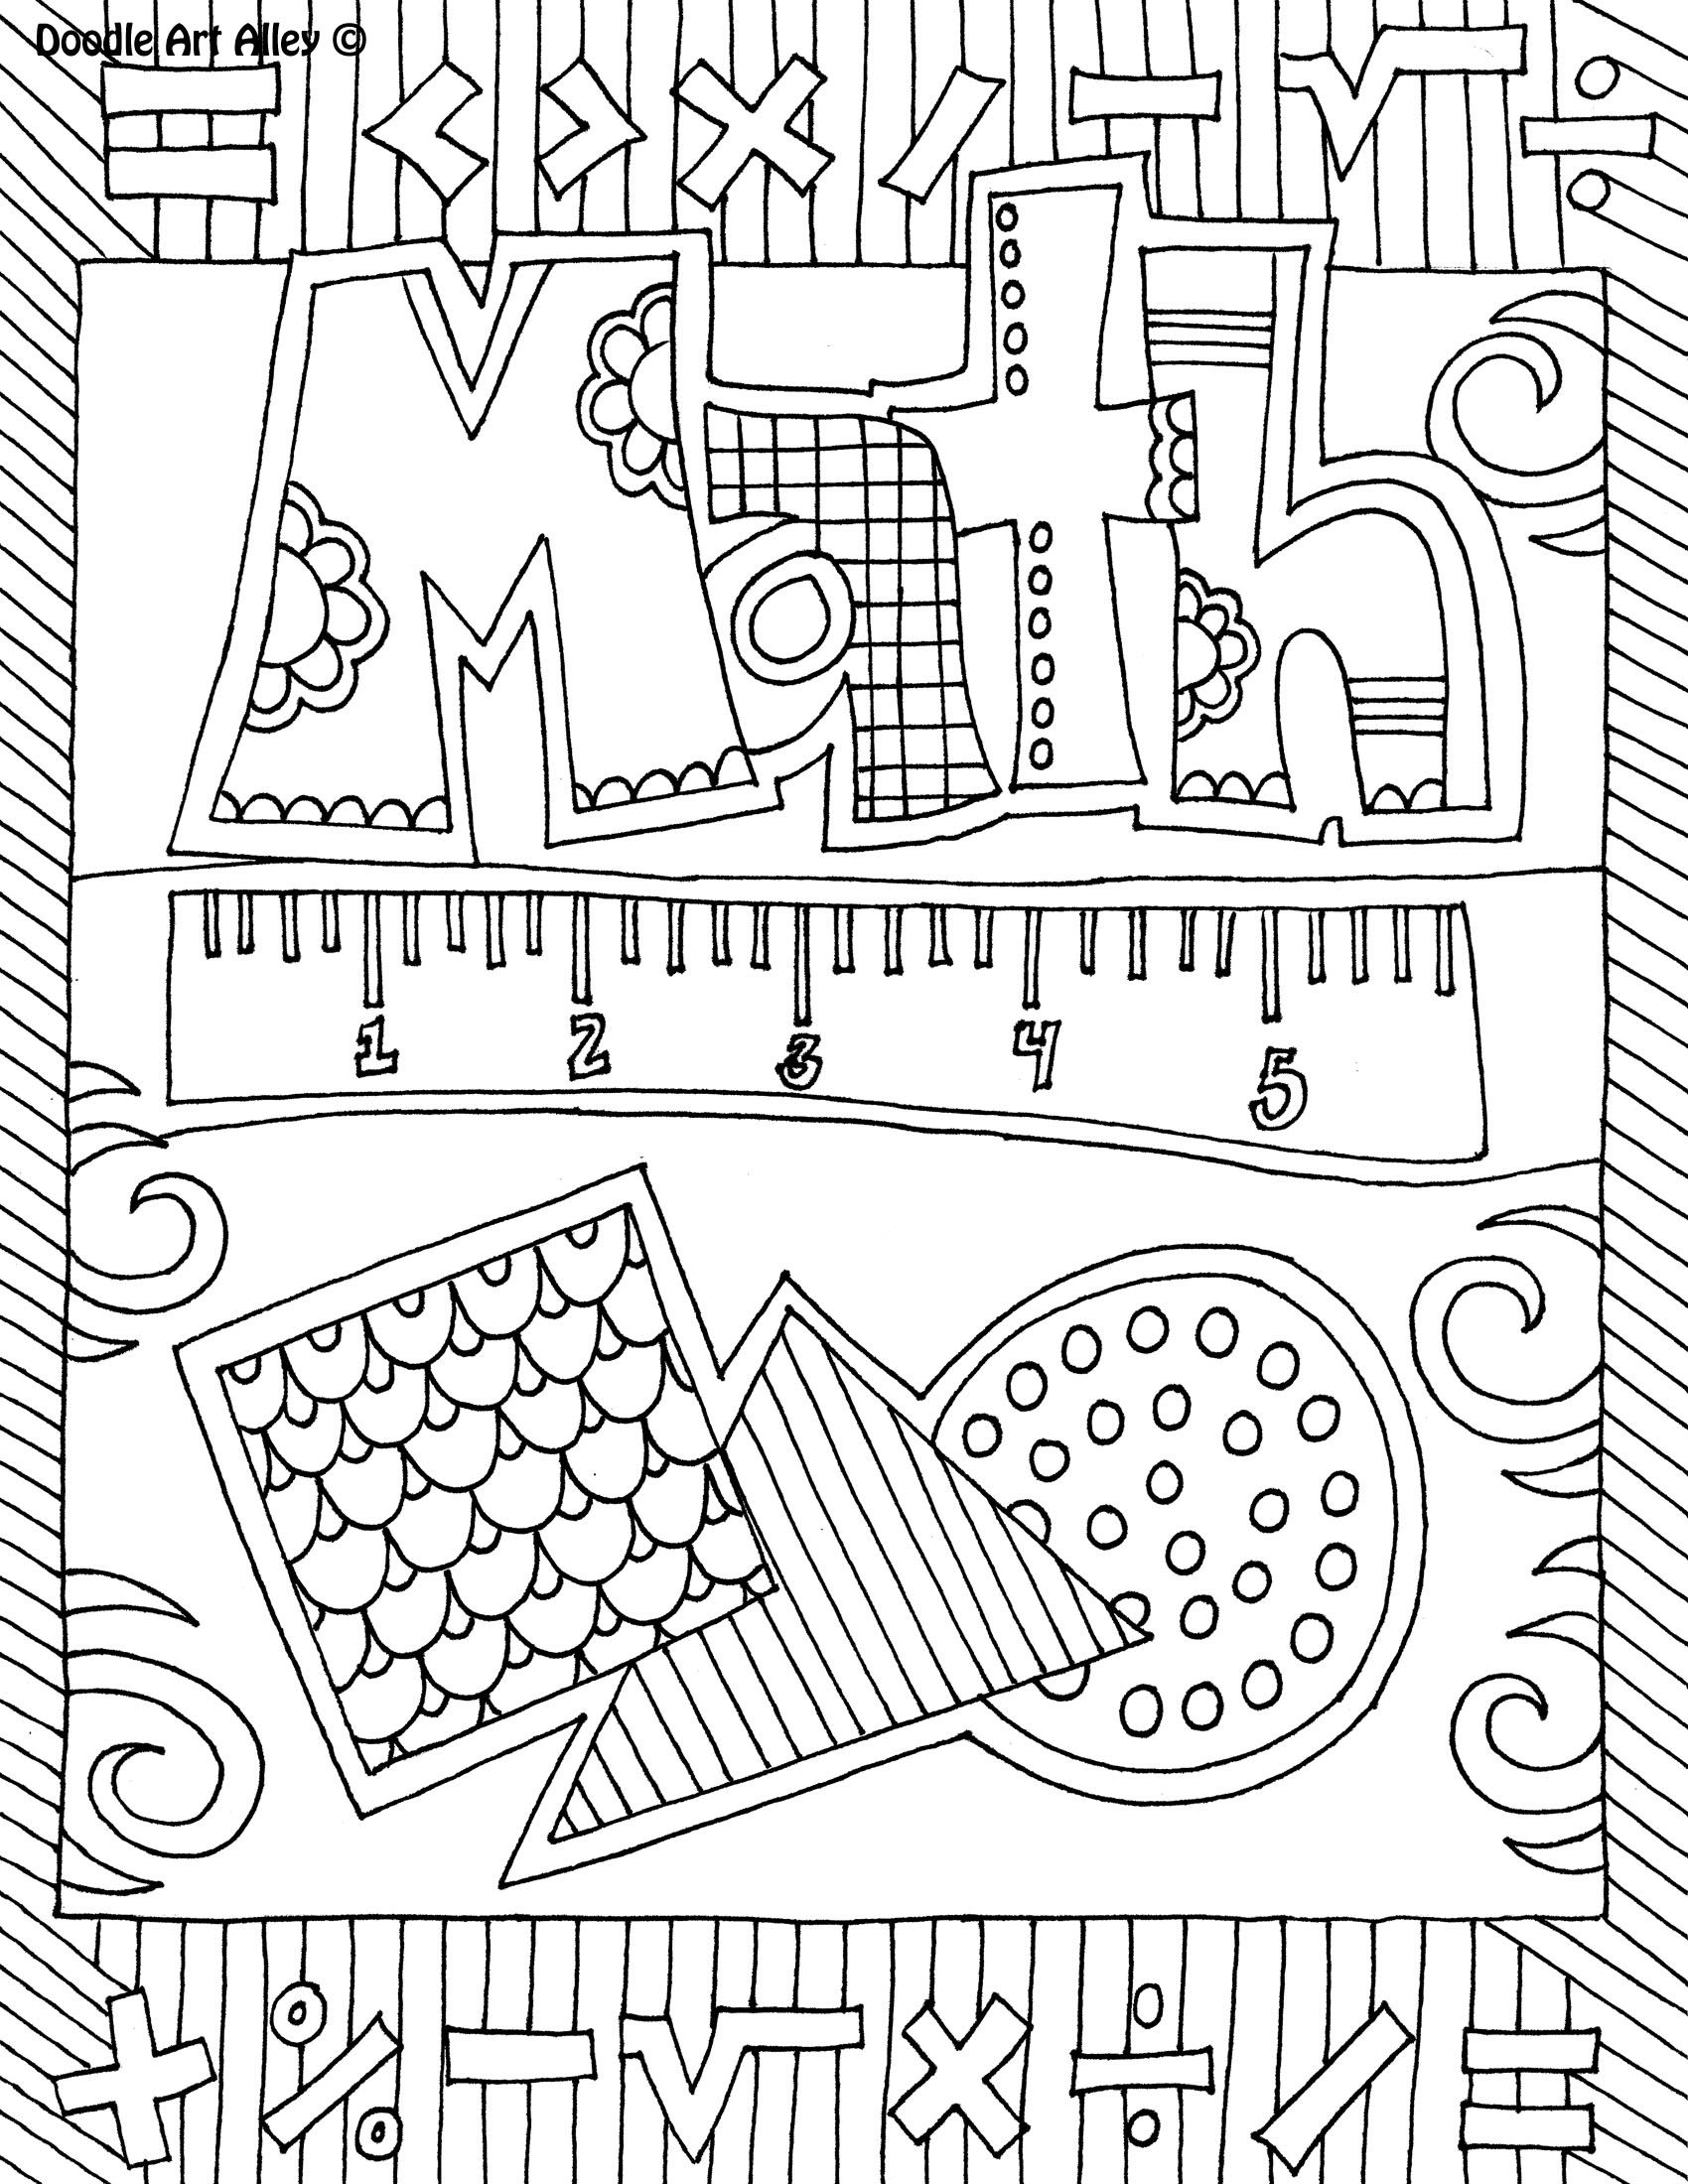 The benefits of coloring these school subject coloring